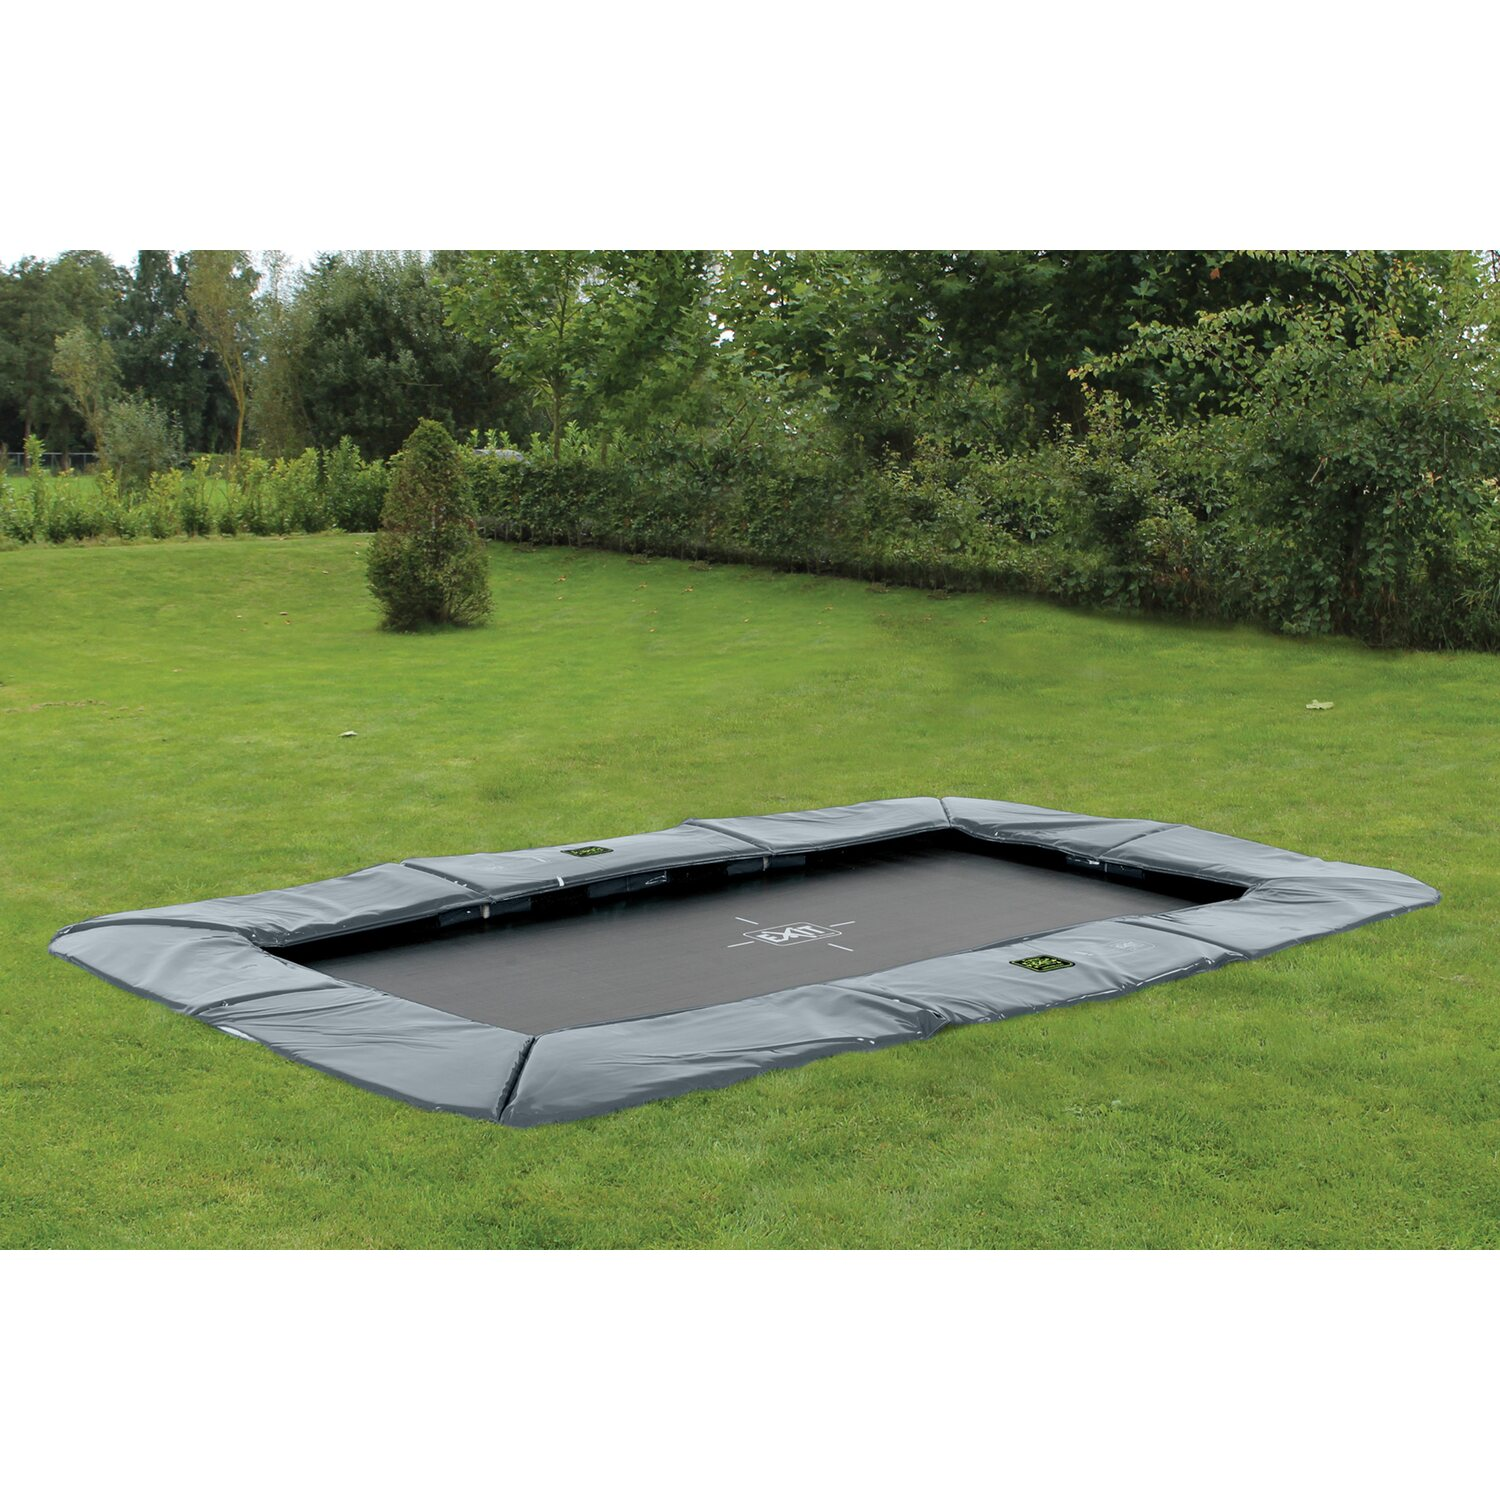 Exit Bodentrampolin Supreme Ground Level 244 Cm X 427 Cm Grau Kaufen